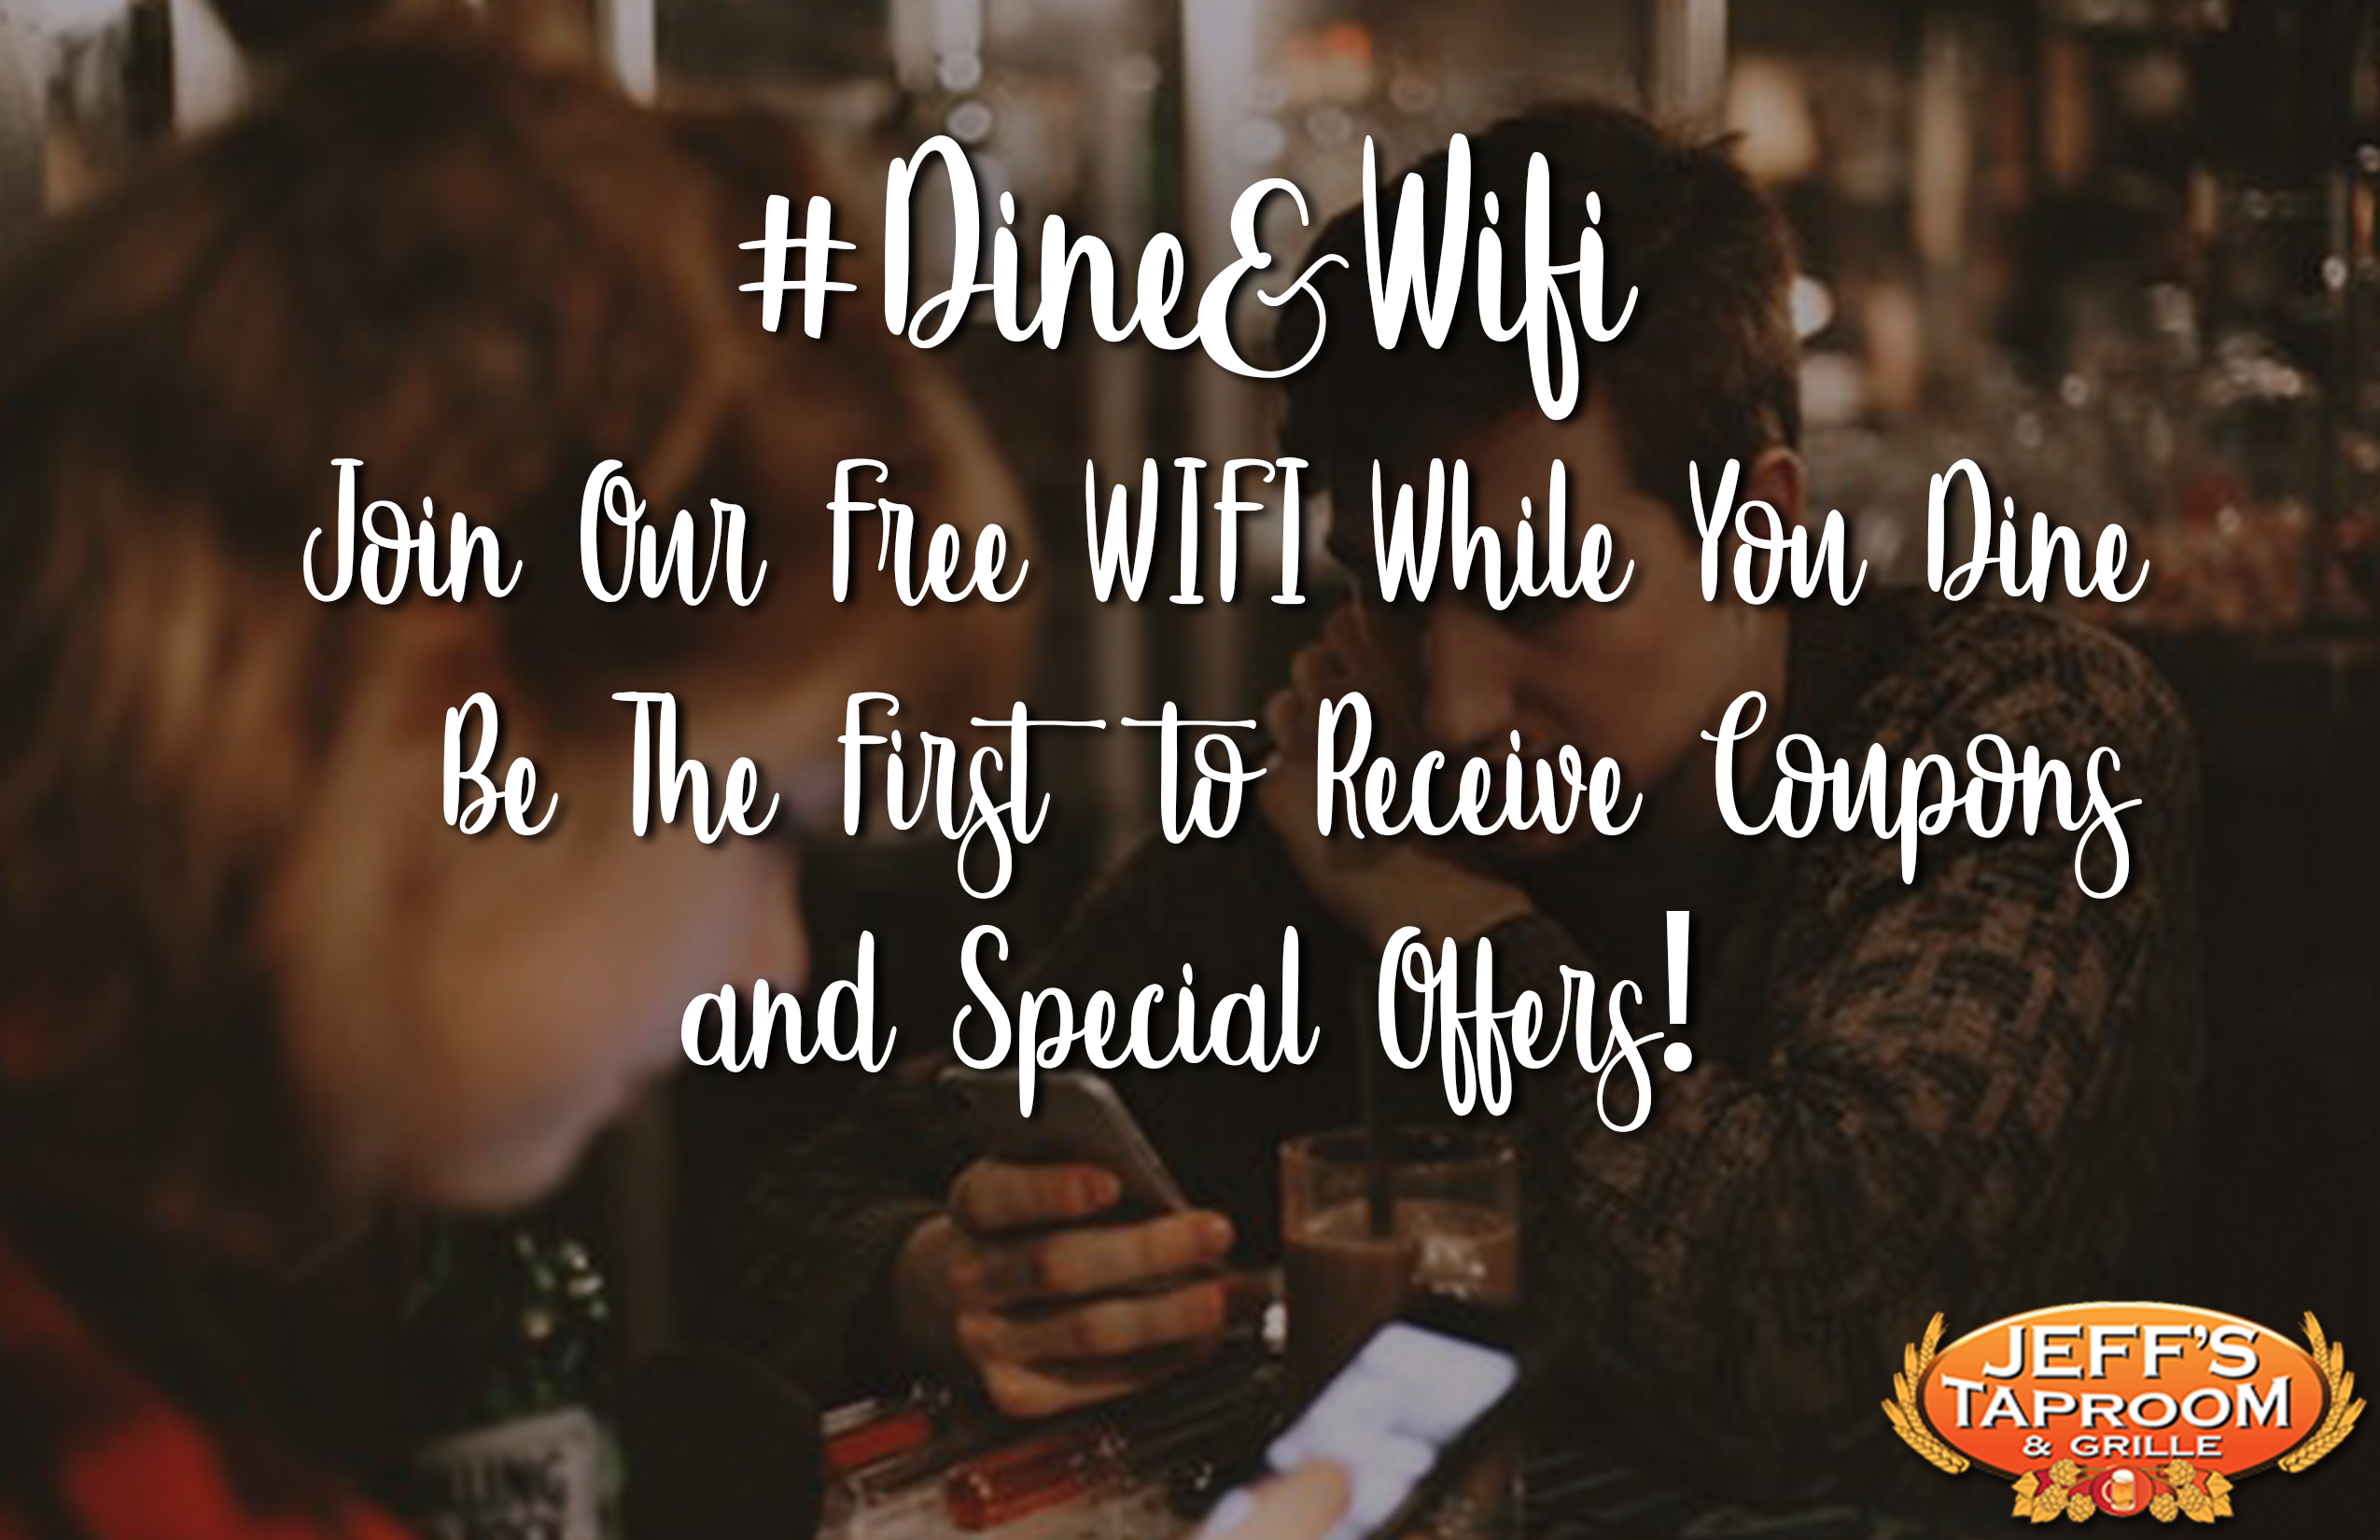 #Dine & WiFi. Join our Free Wifi while you dine be the first to receive coupons and special offers!